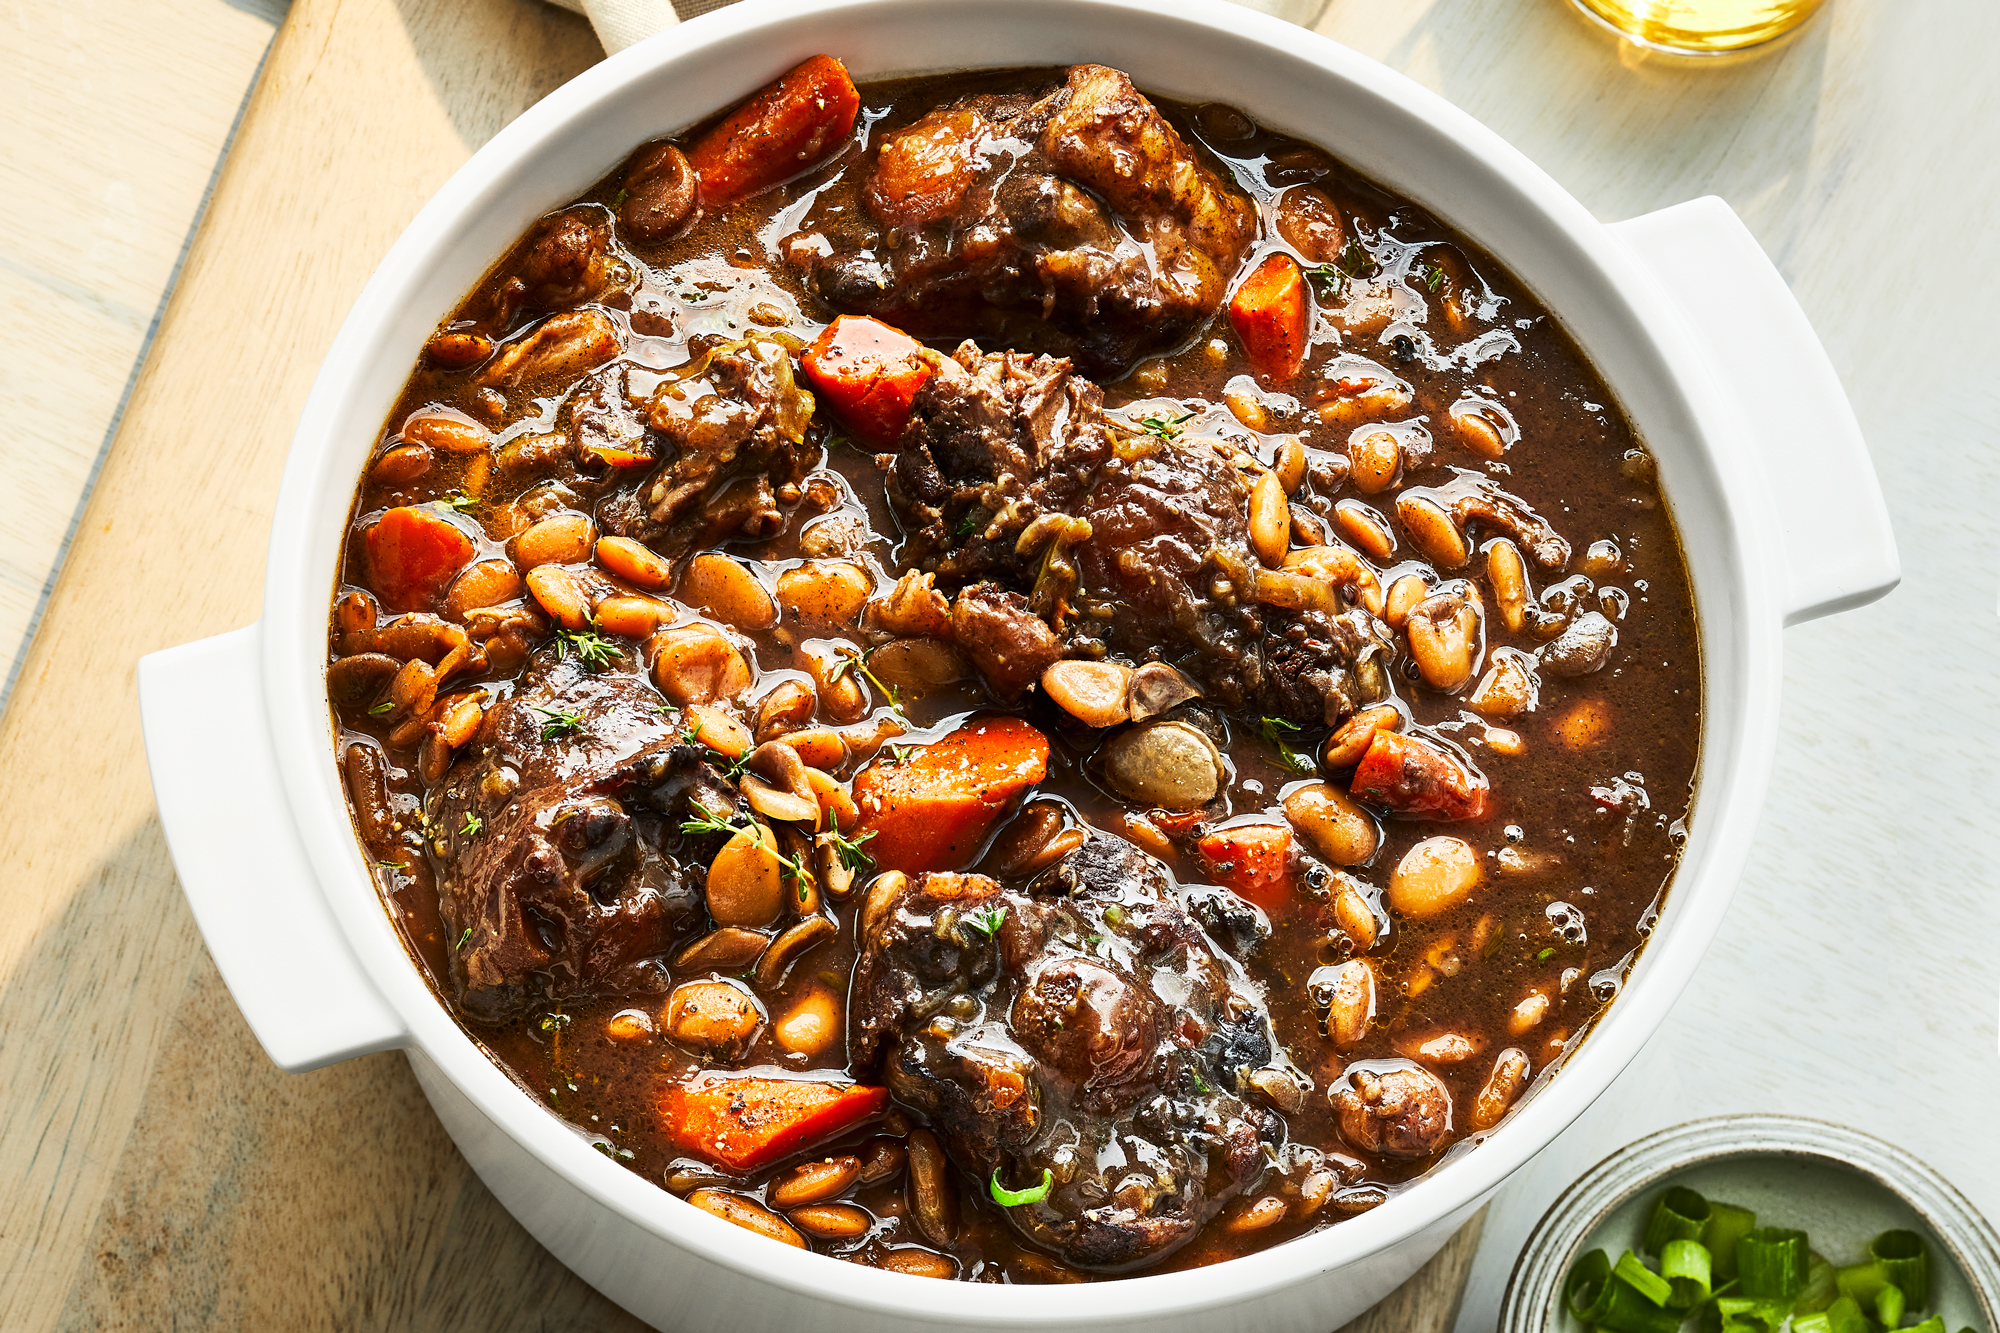 Braised Oxtails with Carrots and Chiles